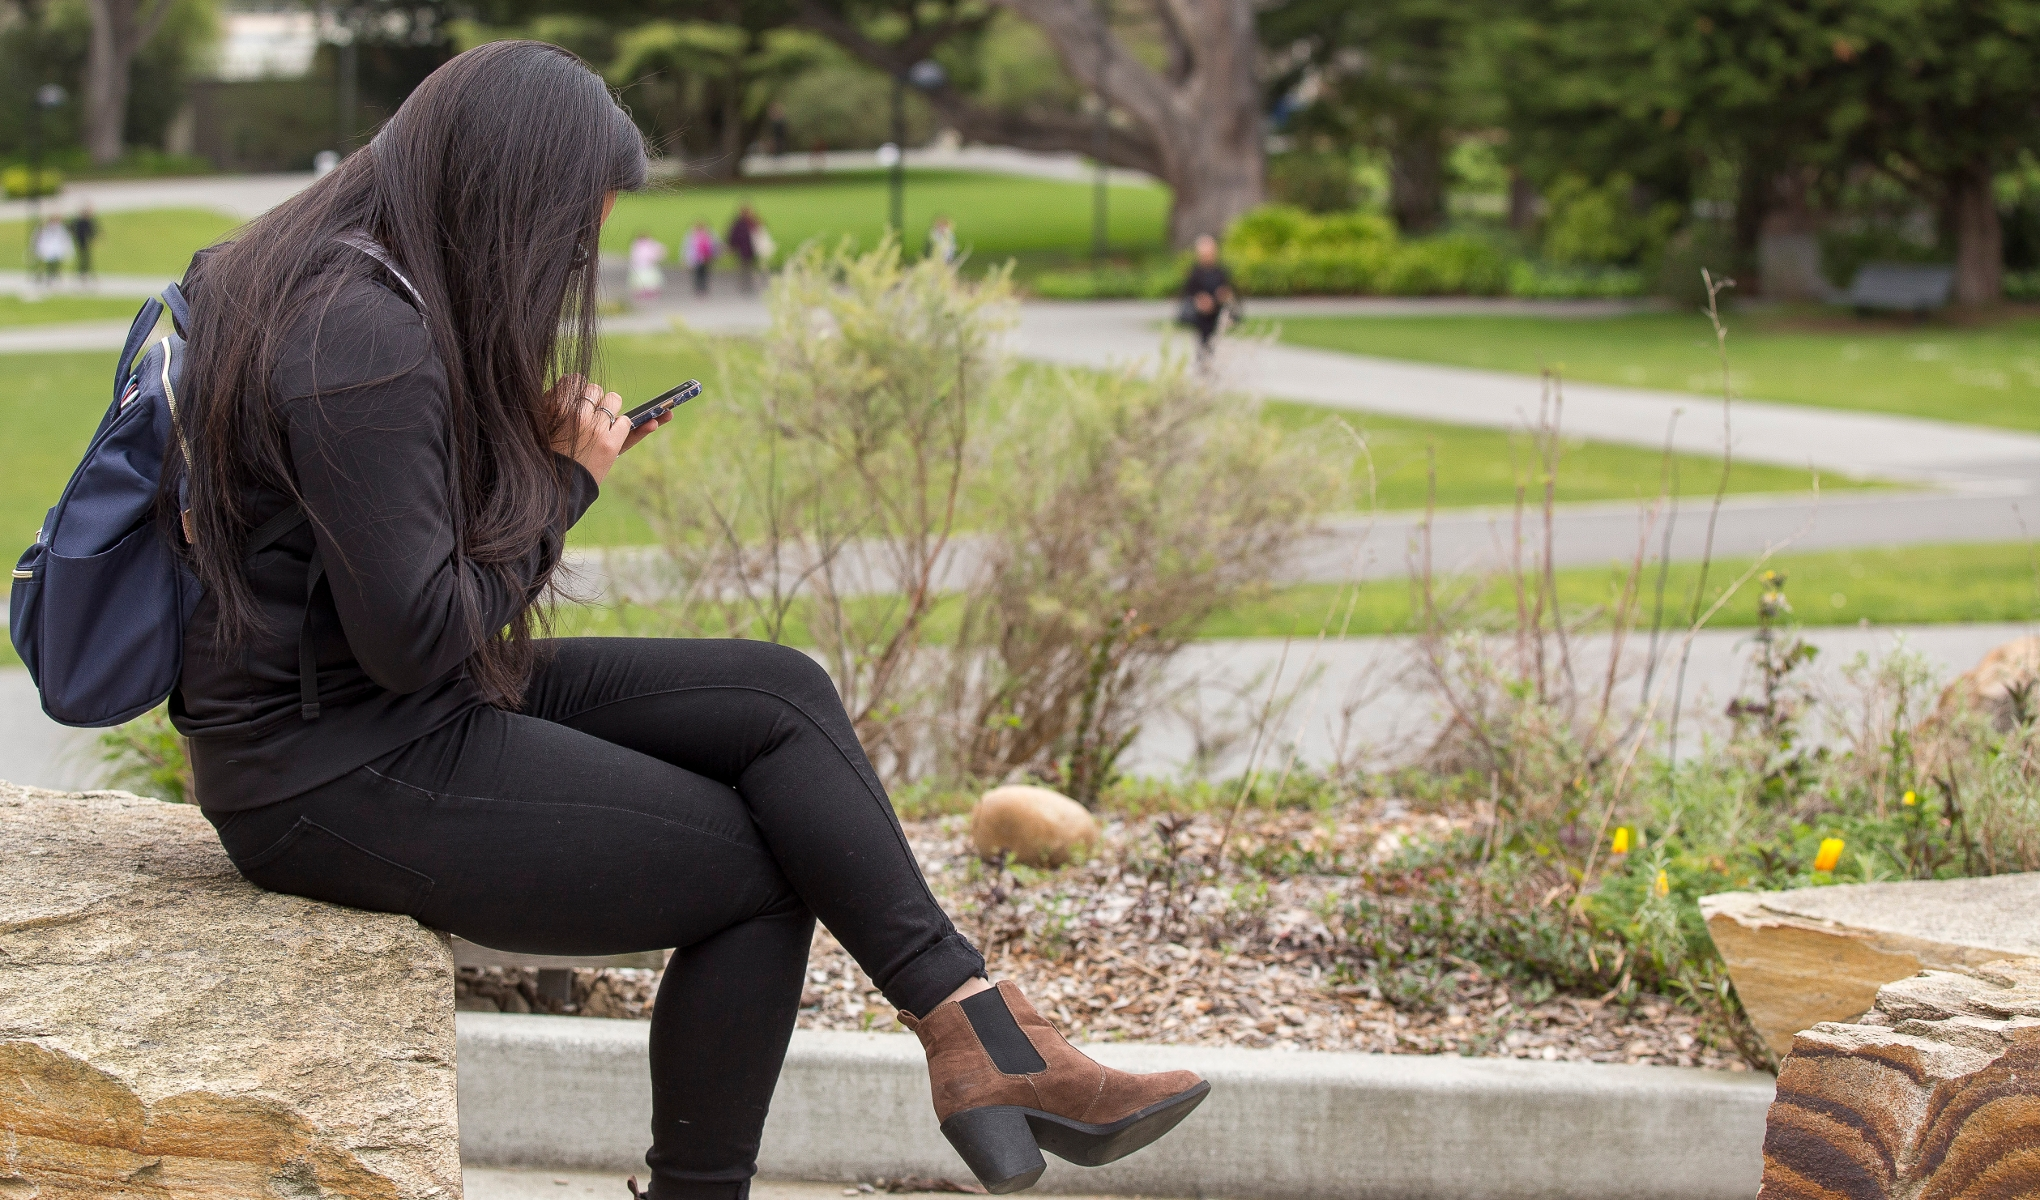 Student hunched over, looking down at phone